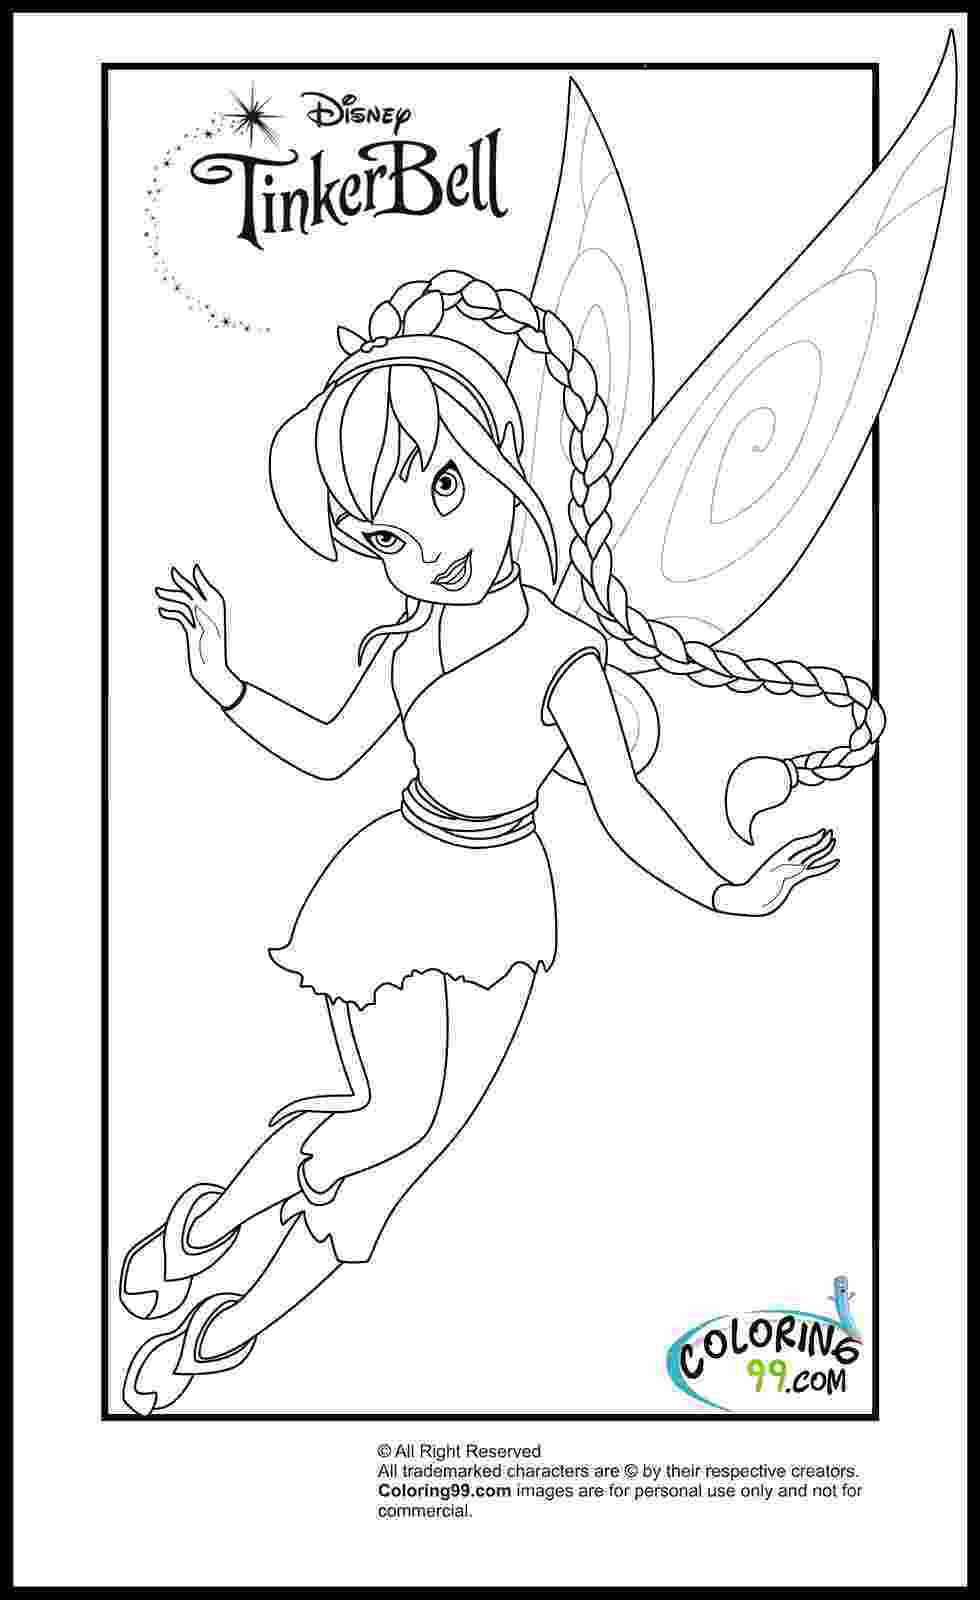 tinkerbell fairy coloring pages june 2013 team colors pages fairy coloring tinkerbell